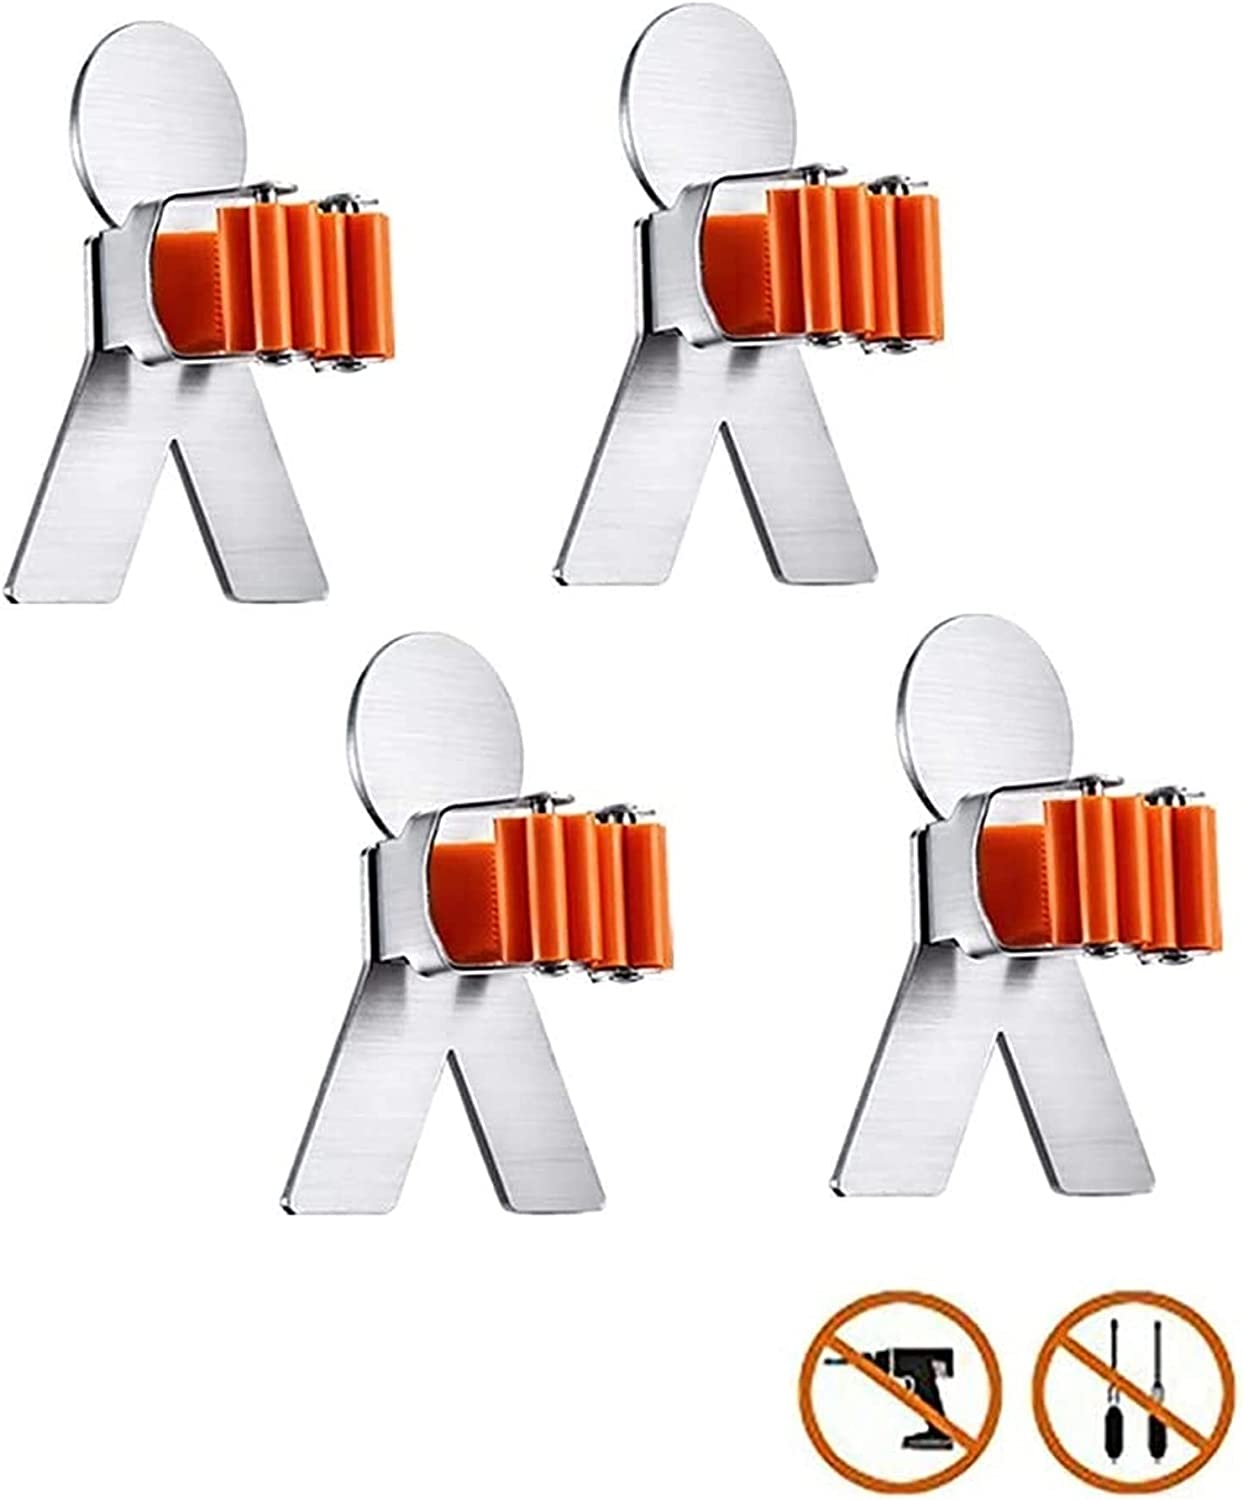 National products Broom Holder Wall Mounted Duty Mop Indefinitely Stainless Heavy